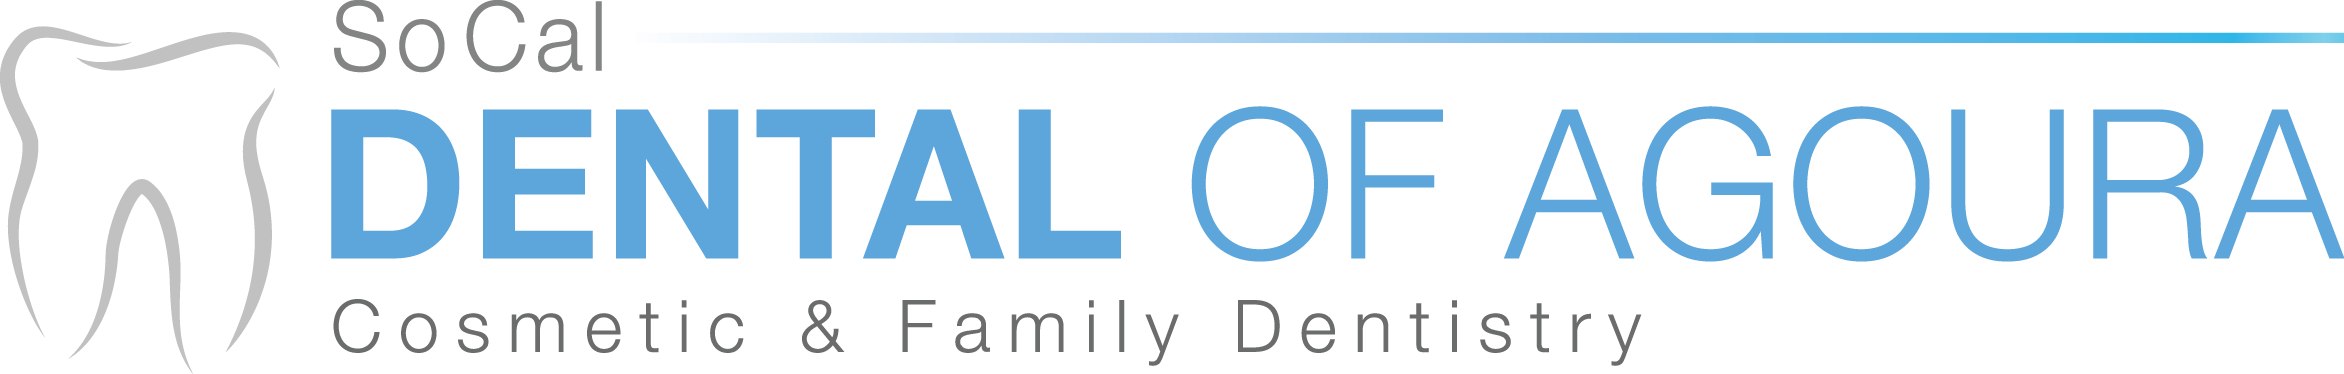 Visit SoCal Dental of Agoura